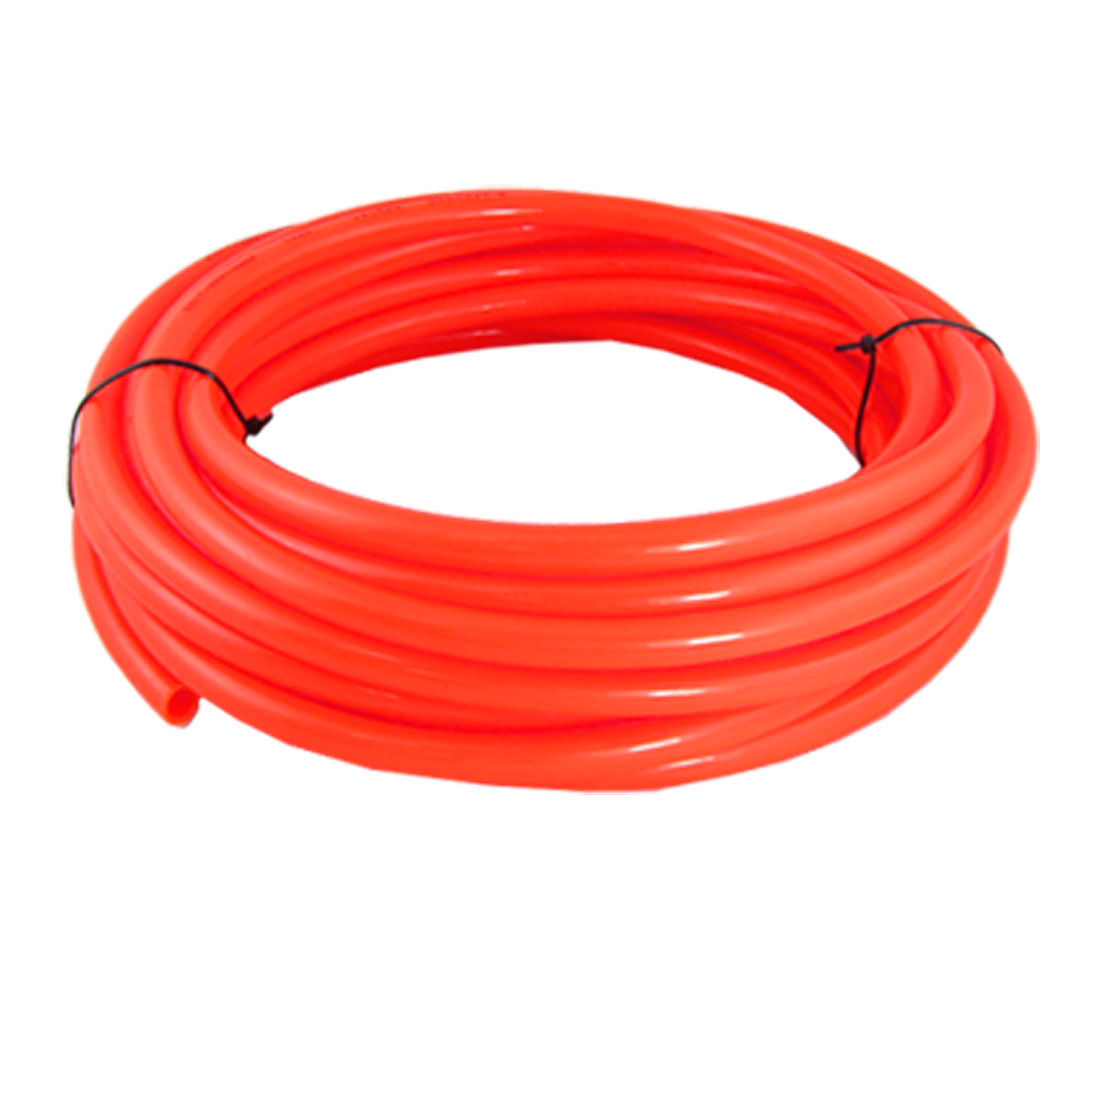 Orange Red 10M 32.8Ft 12mm OD 8mm ID Polyurethane PU Air Tube Hose